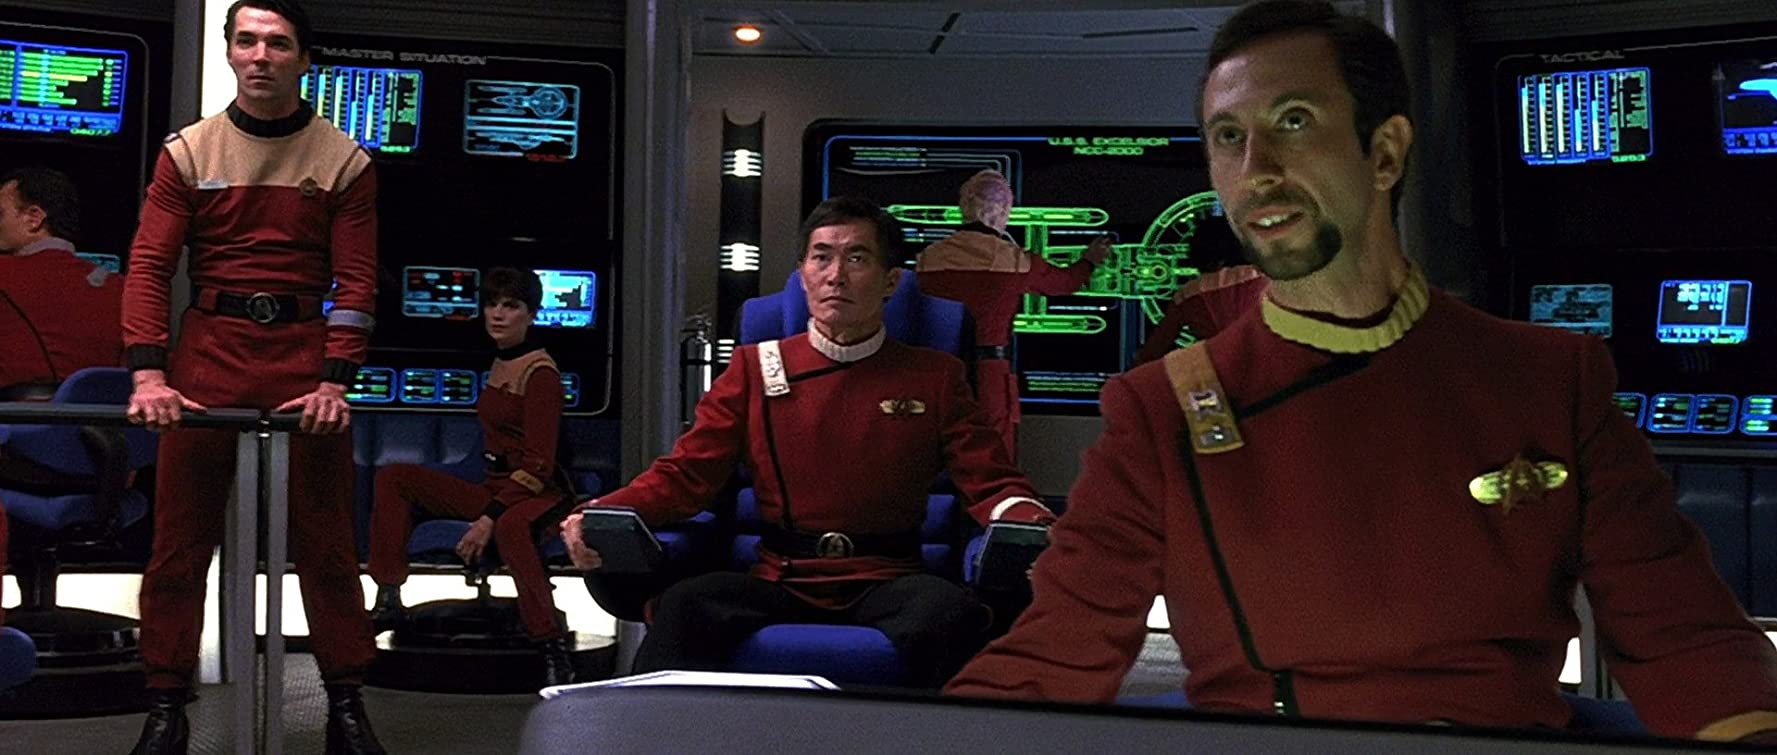 George Takei in Star Trek VI: The Undiscovered Country (1991)